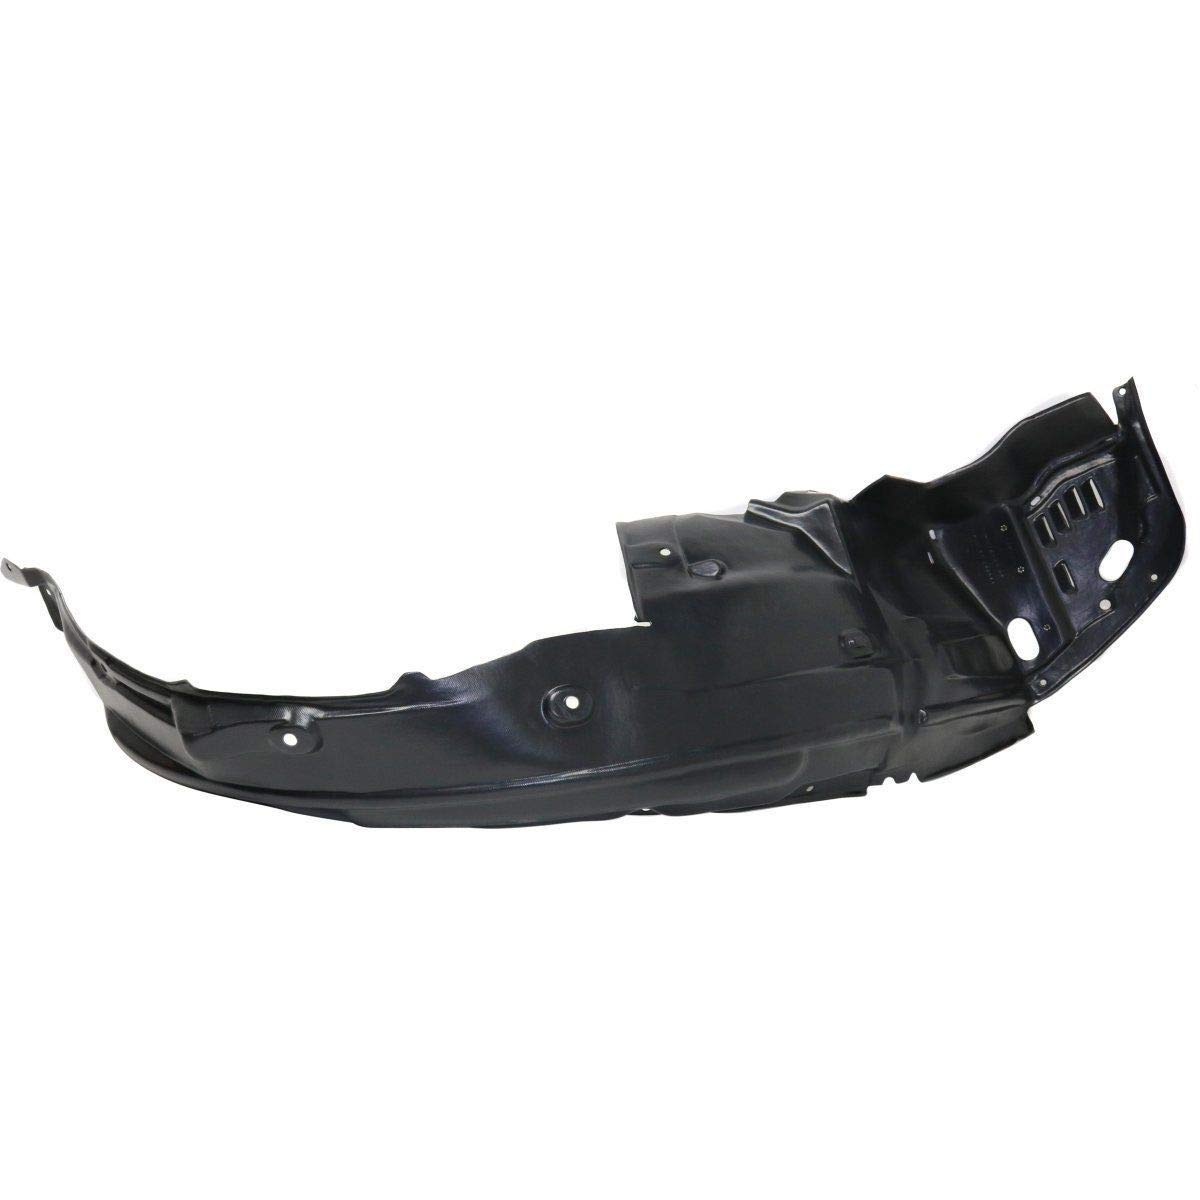 74100TE0A01 Parts N Go 2008-2012 Accord Front Fender Liner Passenger Side Right Hand Splash Guard RH HO1249131